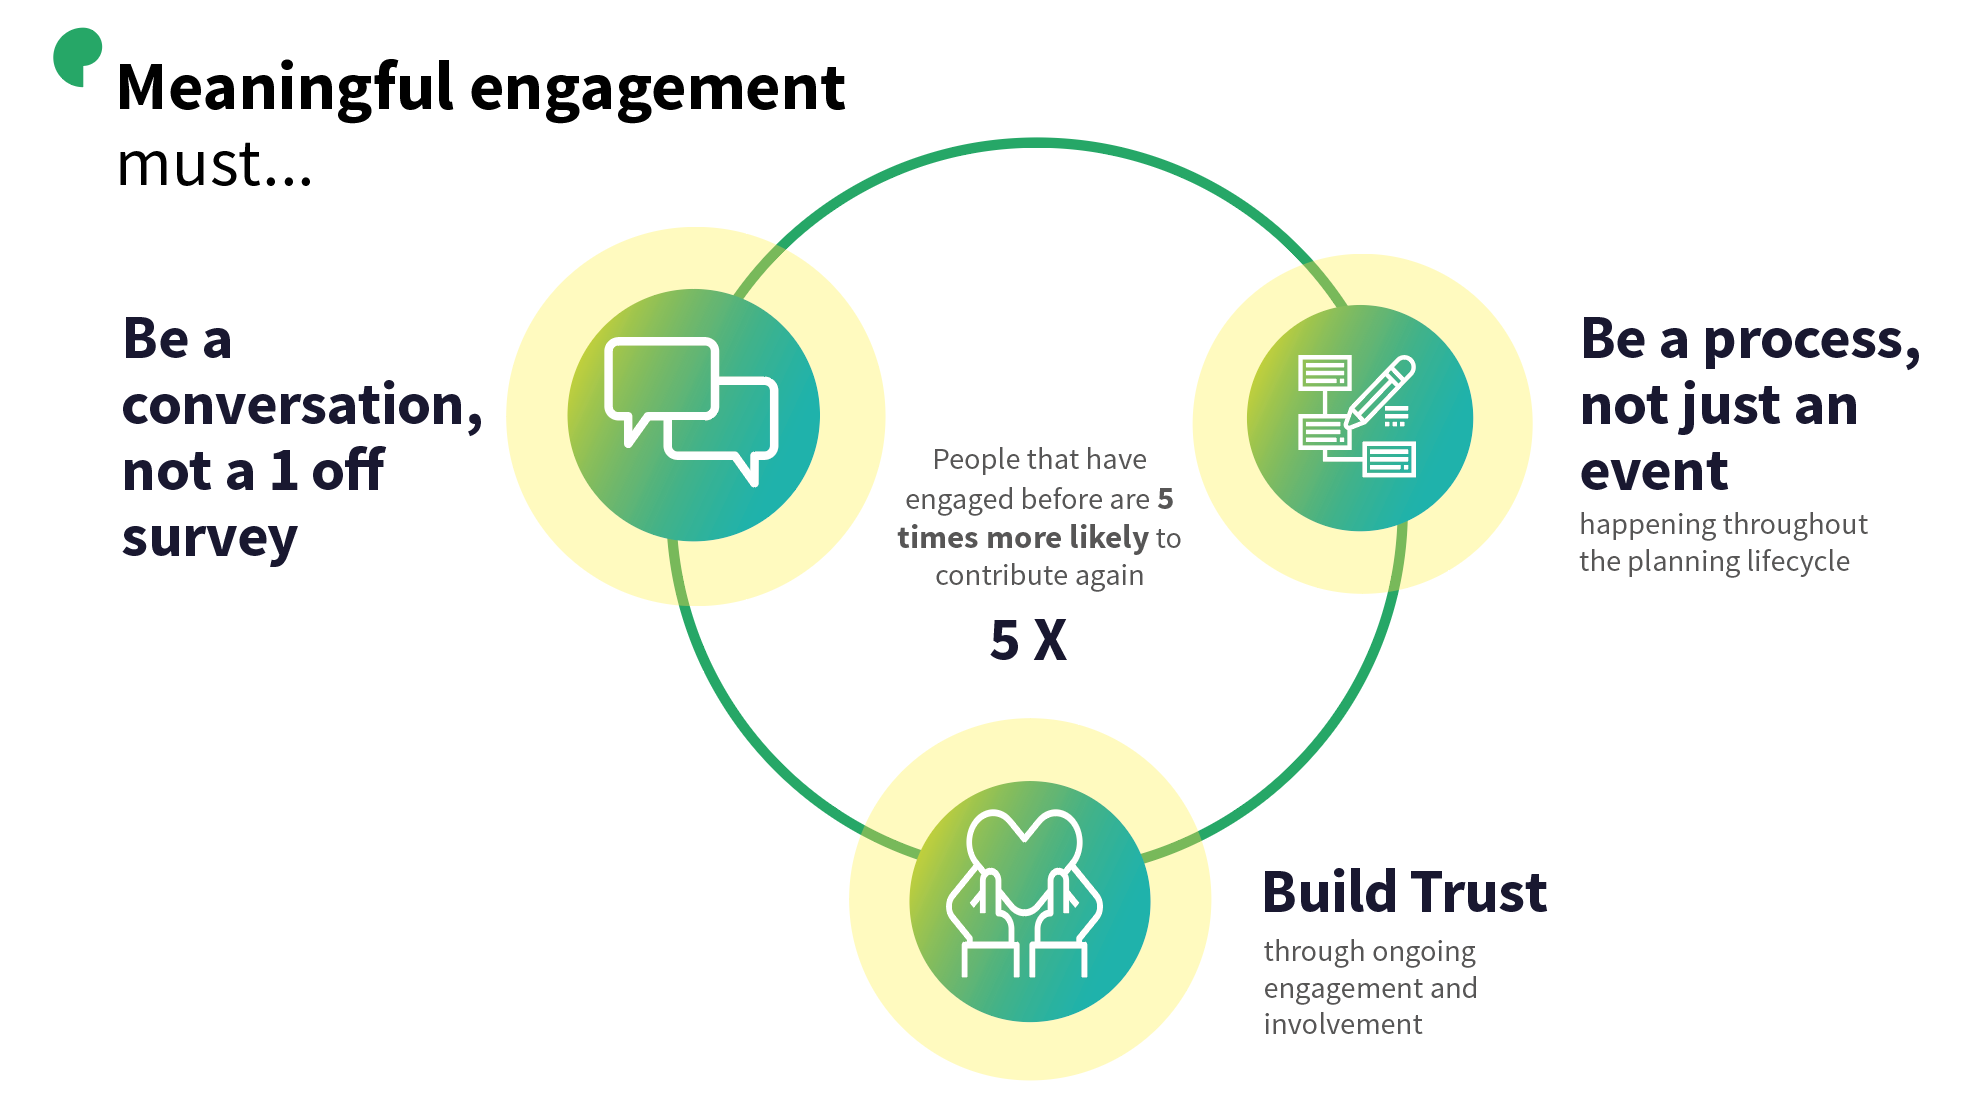 Meaningful engagement requirements